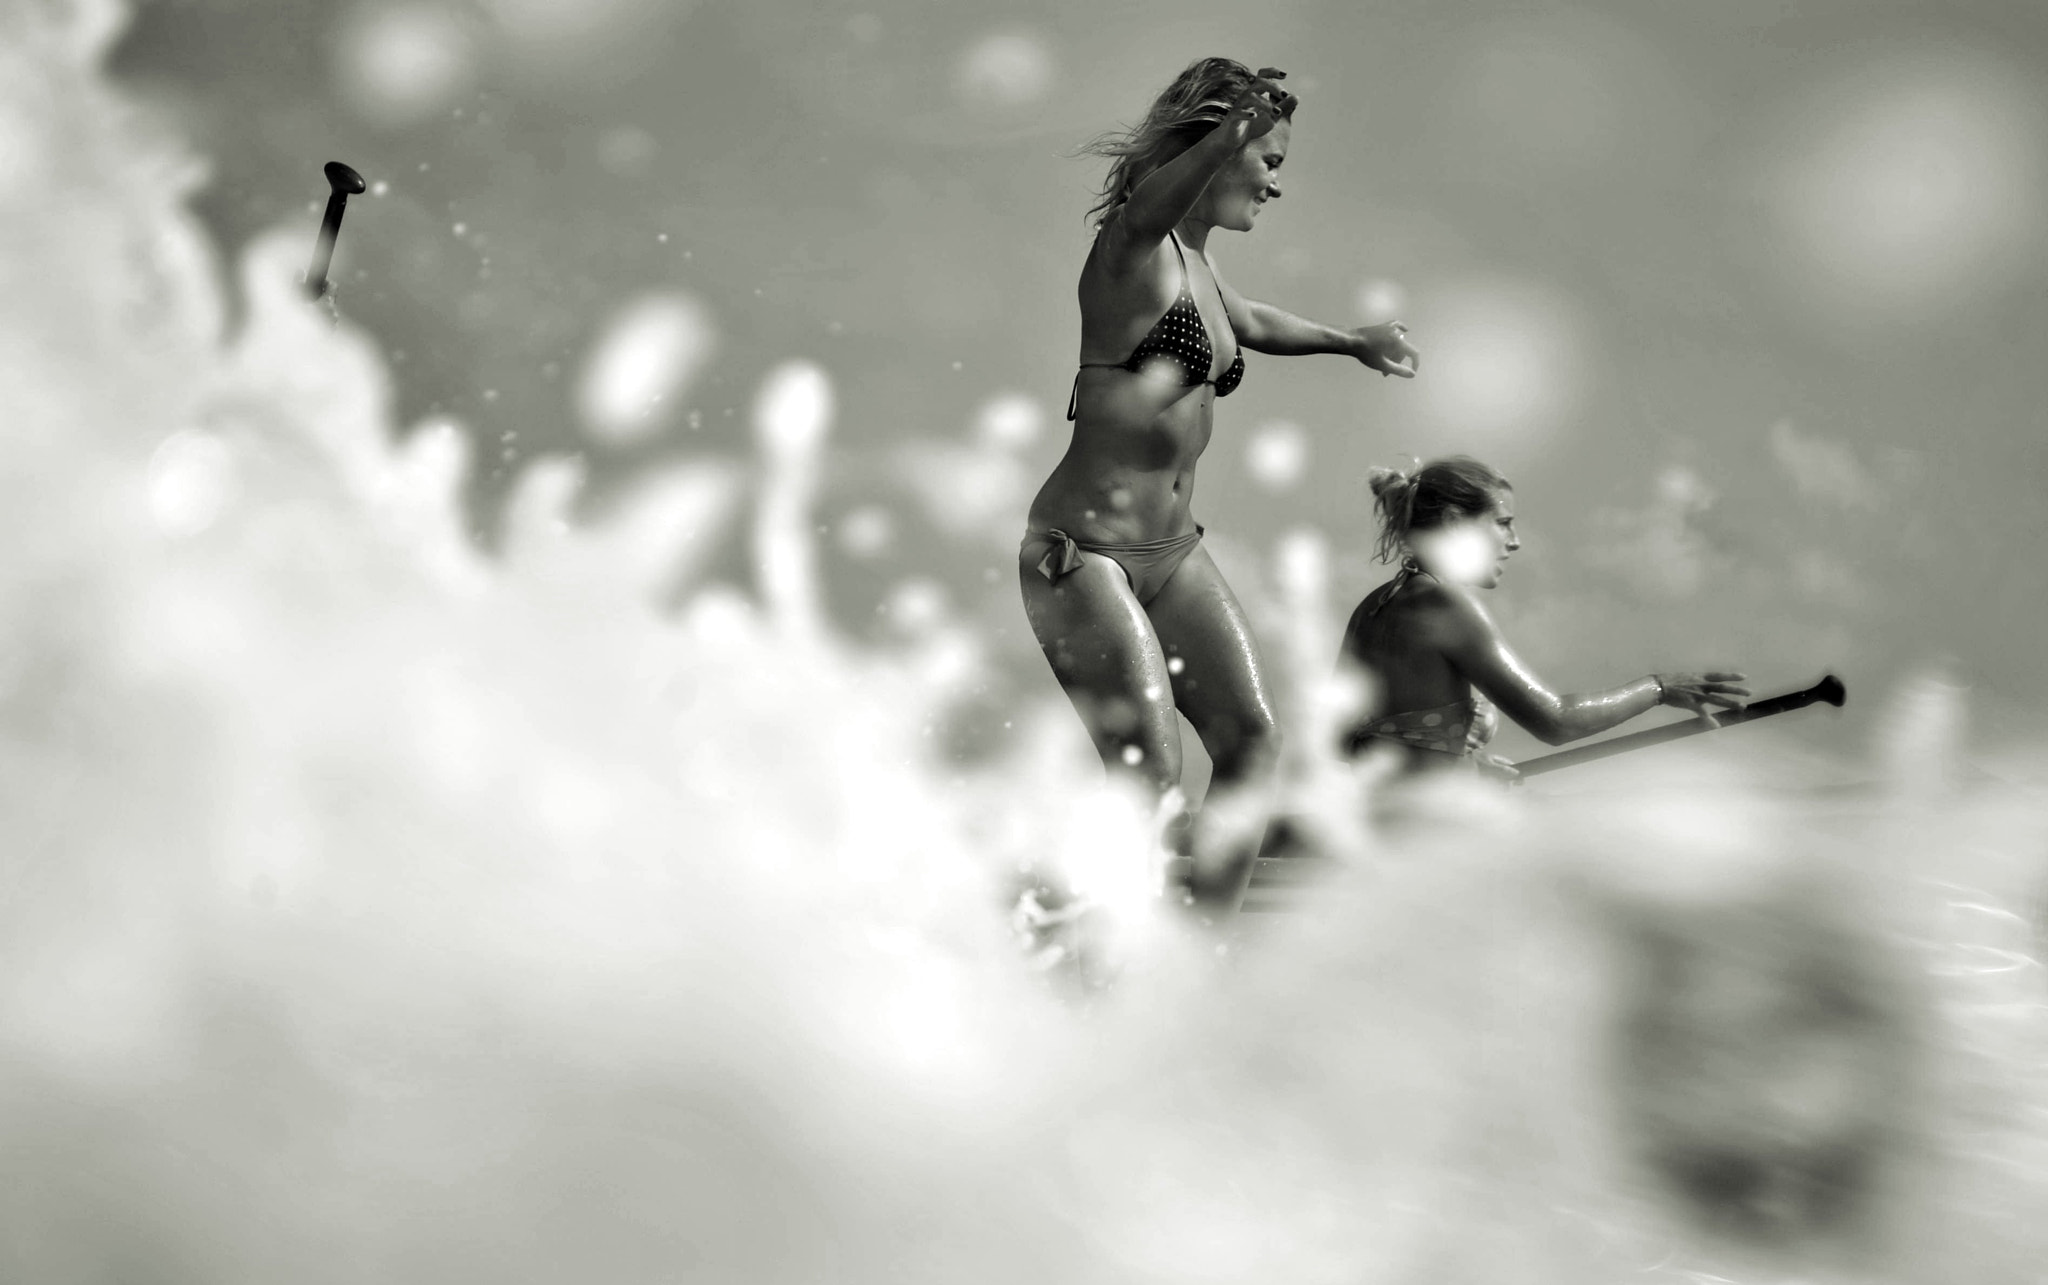 Photograph Walking on the wave by Matt Cardinal on 500px